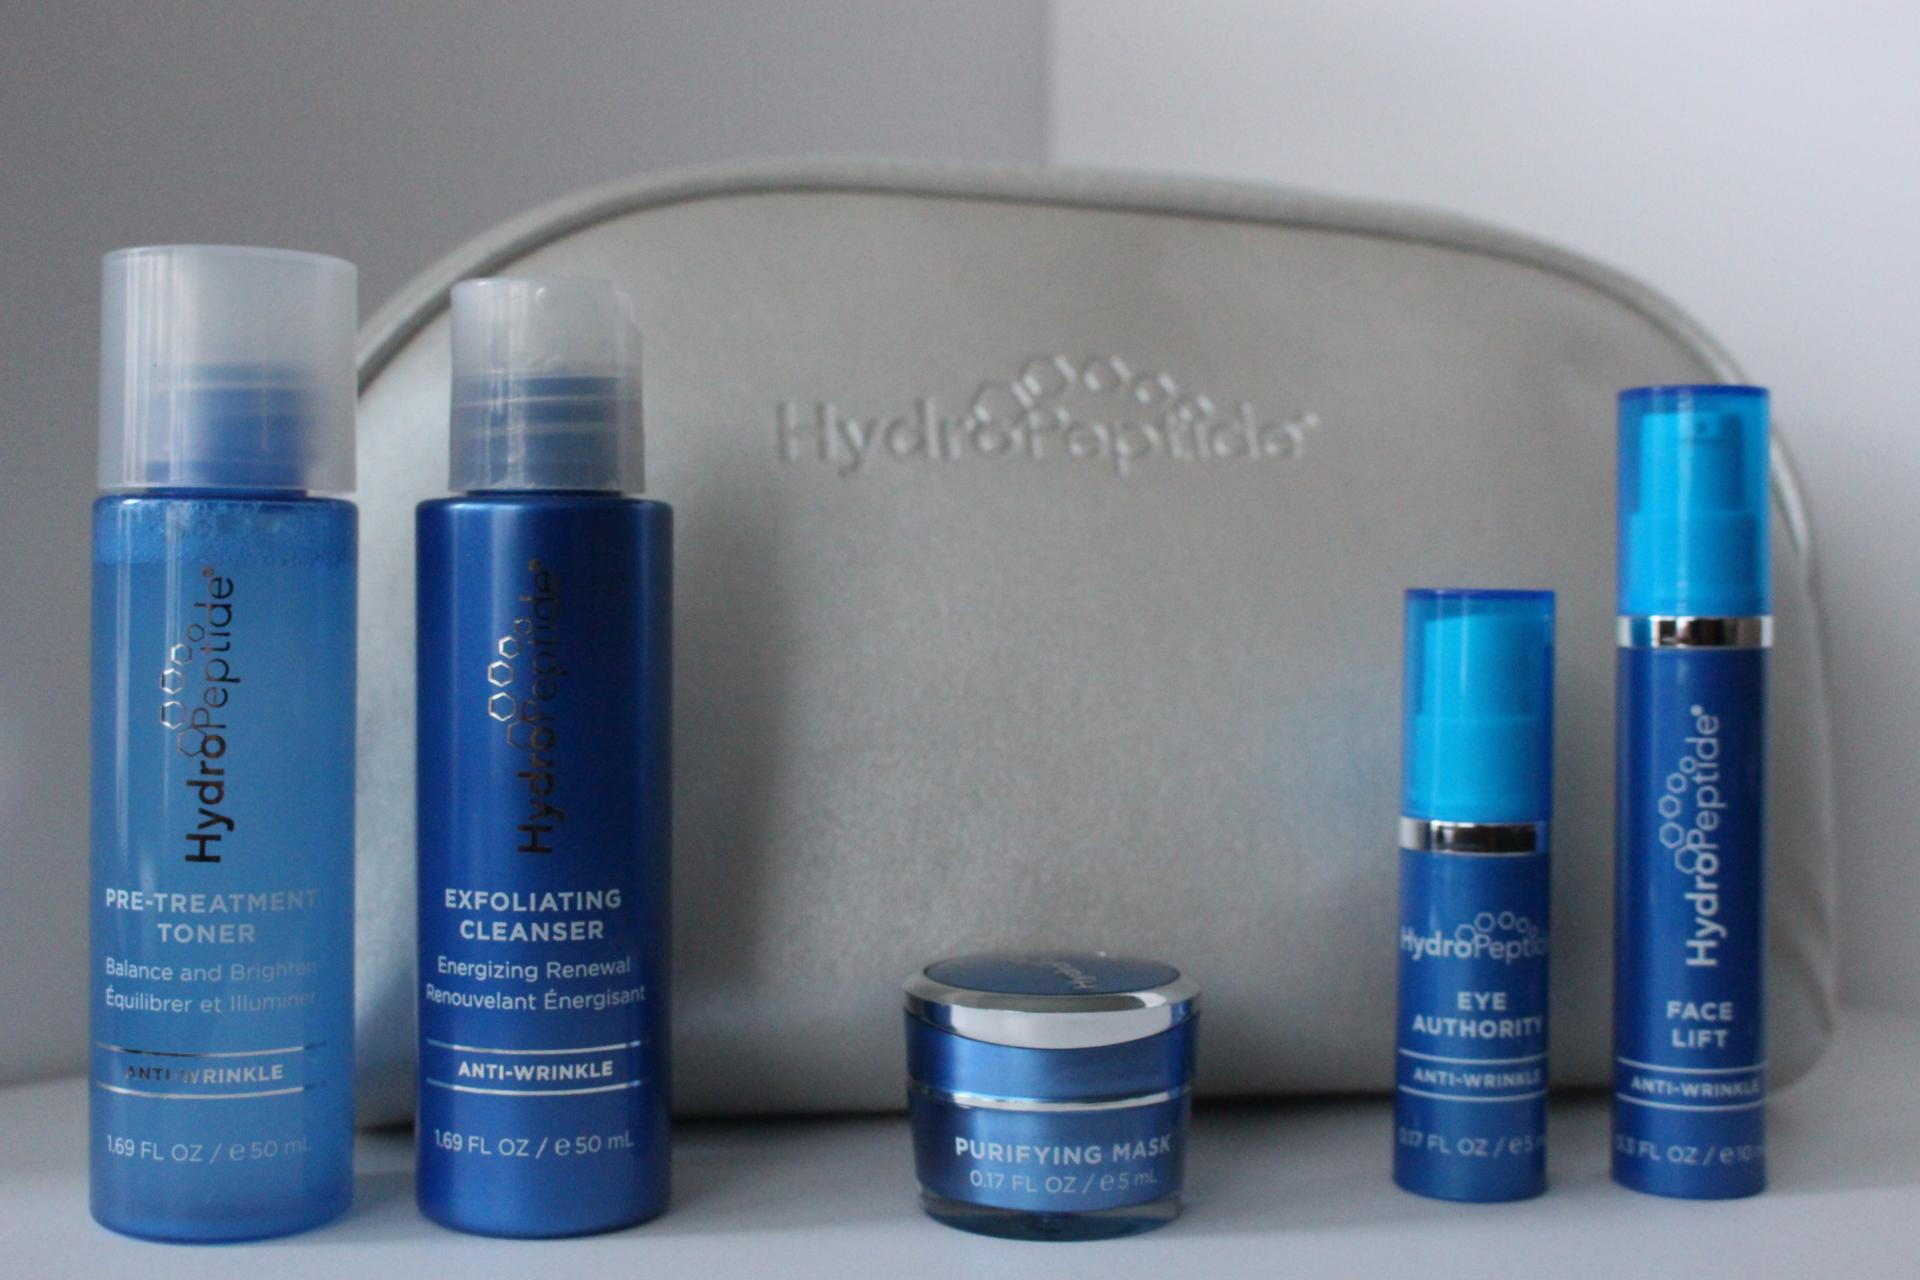 STYLE: My Hydropeptide On The Go Glow Kit